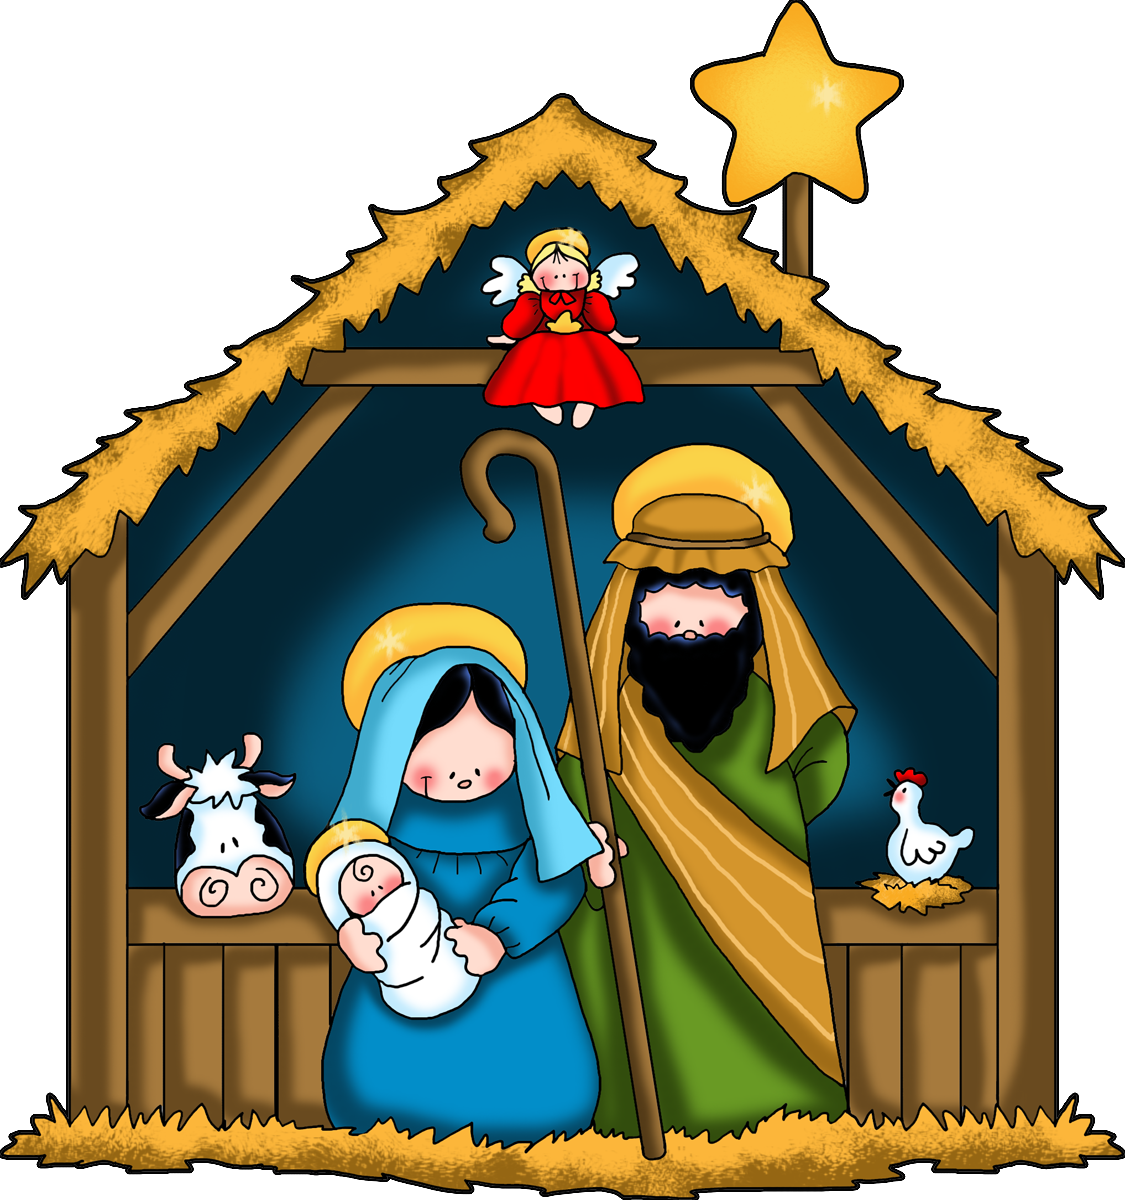 Nativity cute. Clipart free download best